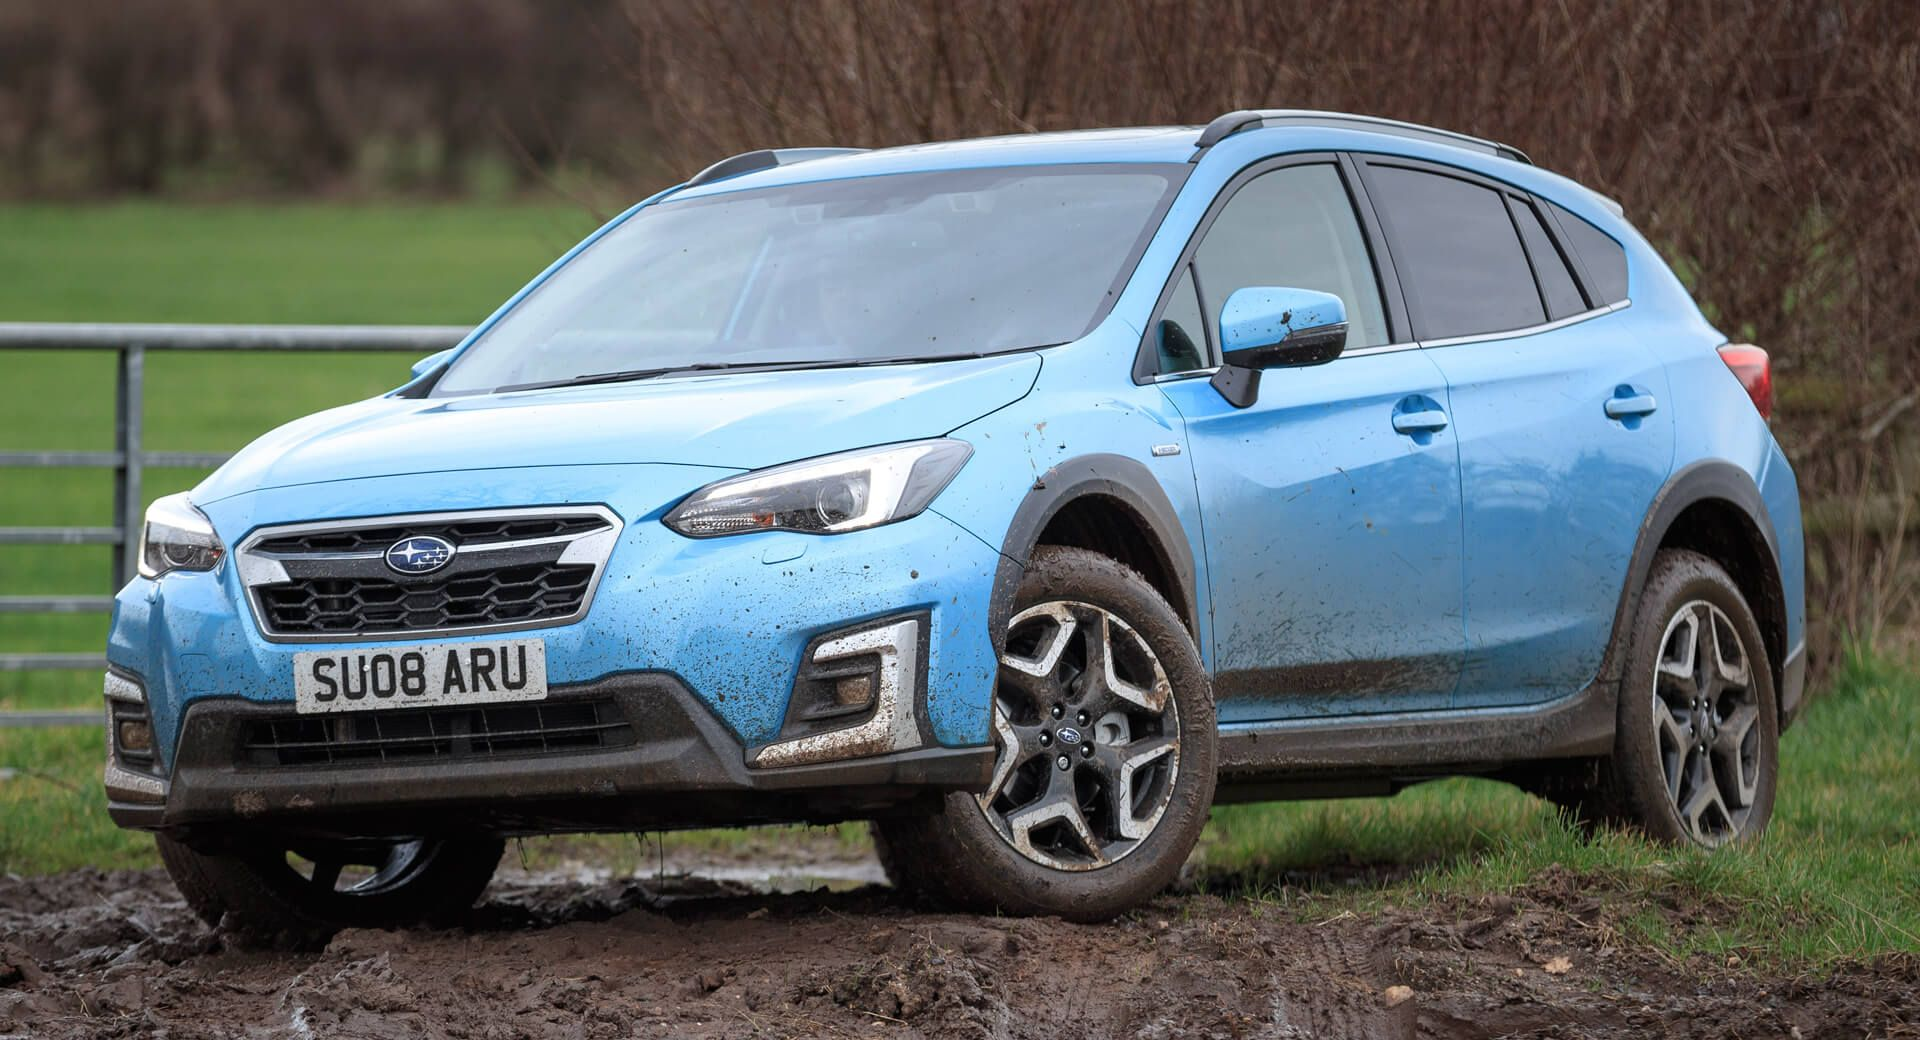 2020 Subaru Xv E Boxer Hybrid Goes On Sale In Britain From 30 995 Hybrids Newcars Prices Subaru Subarucrosstrek Subaruxv Uk In 2020 Subaru New Cars Subaru Cars